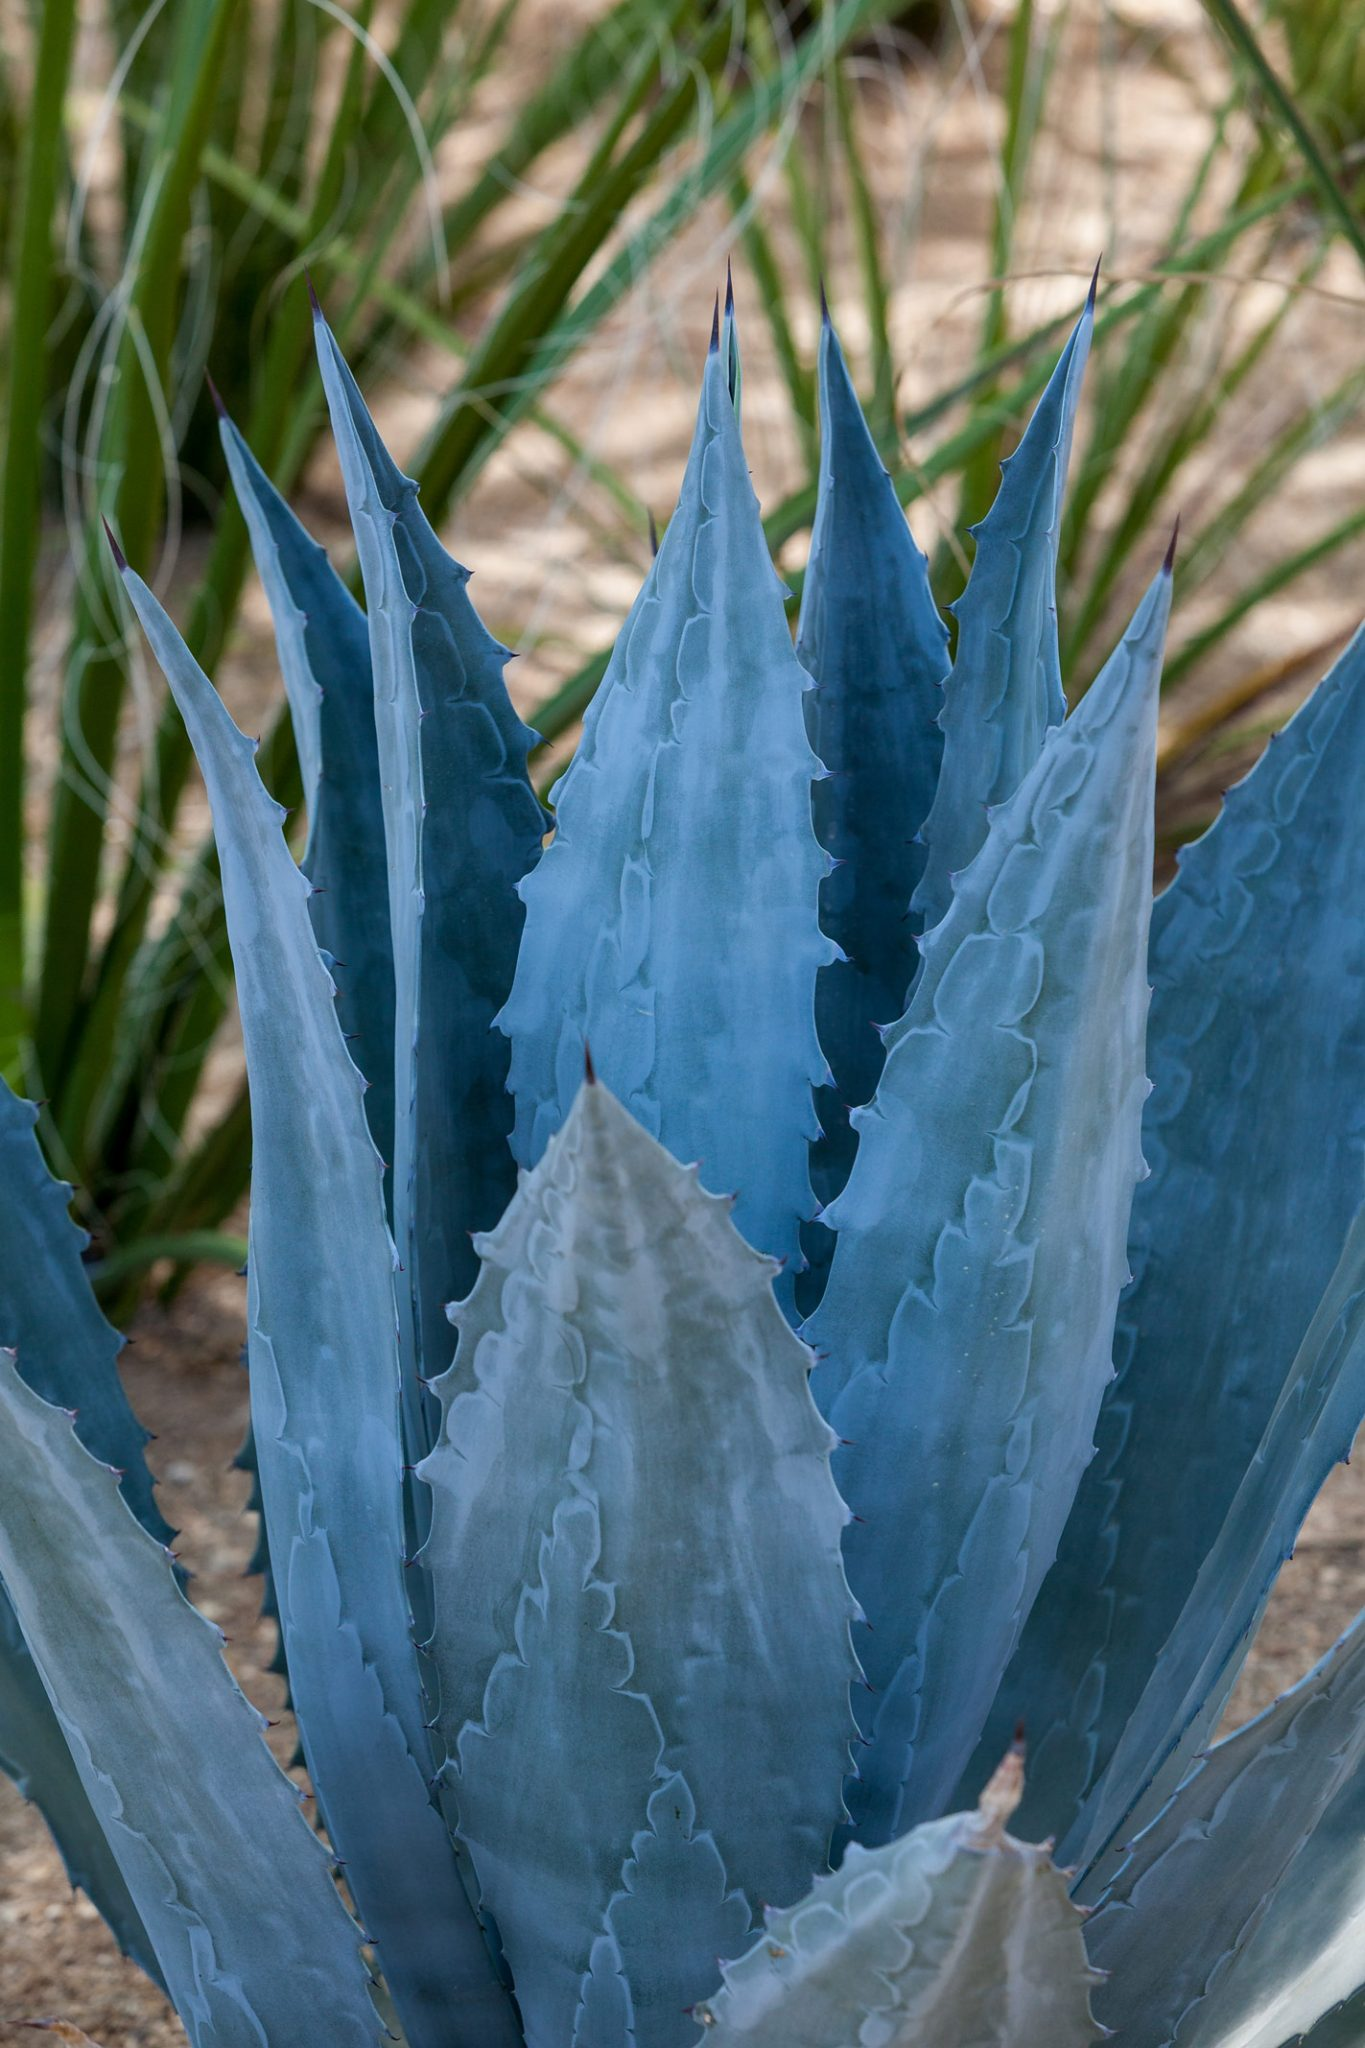 A close up view of the blue-gray leaves and sharp teeth of the Century Plant.